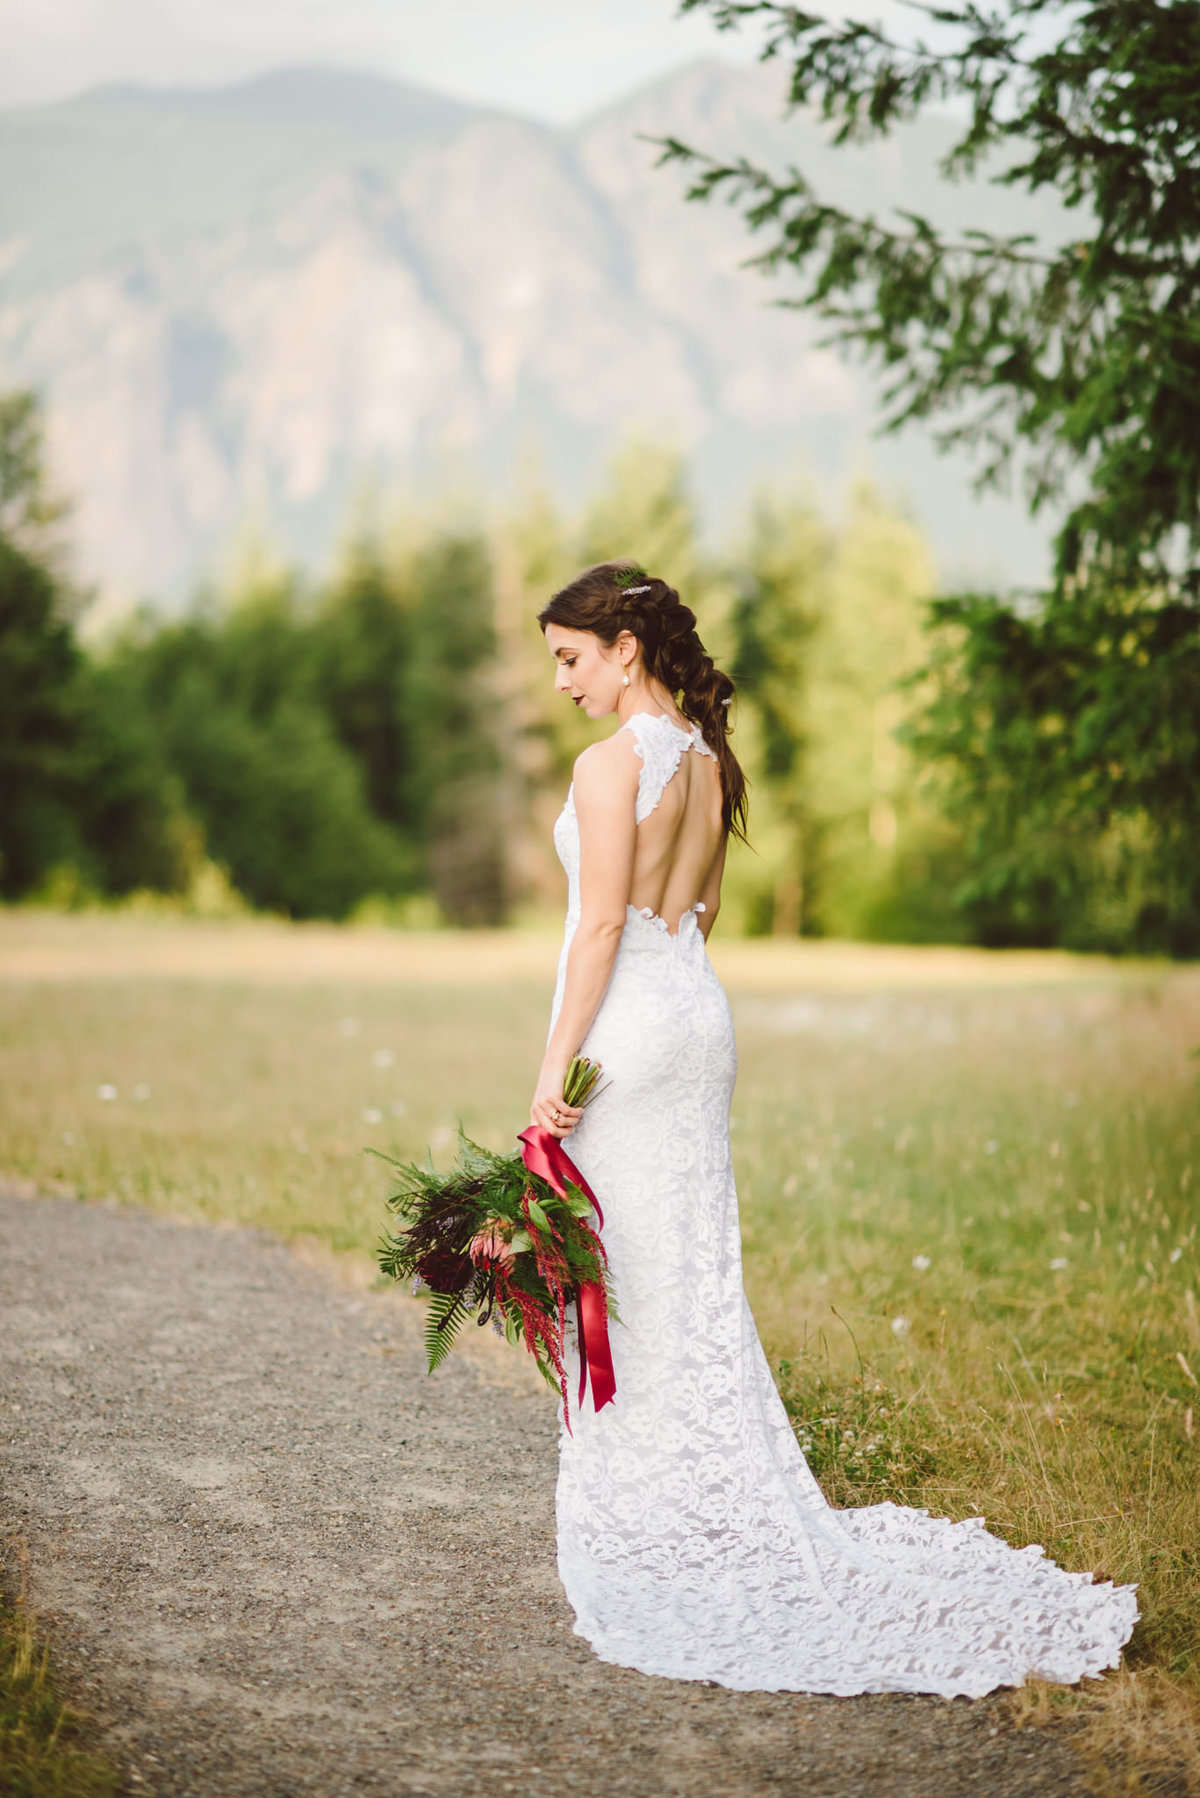 Seattle Wedding Photographer Karissa Roe Snoqualmie Point Park Wedding Photos-5